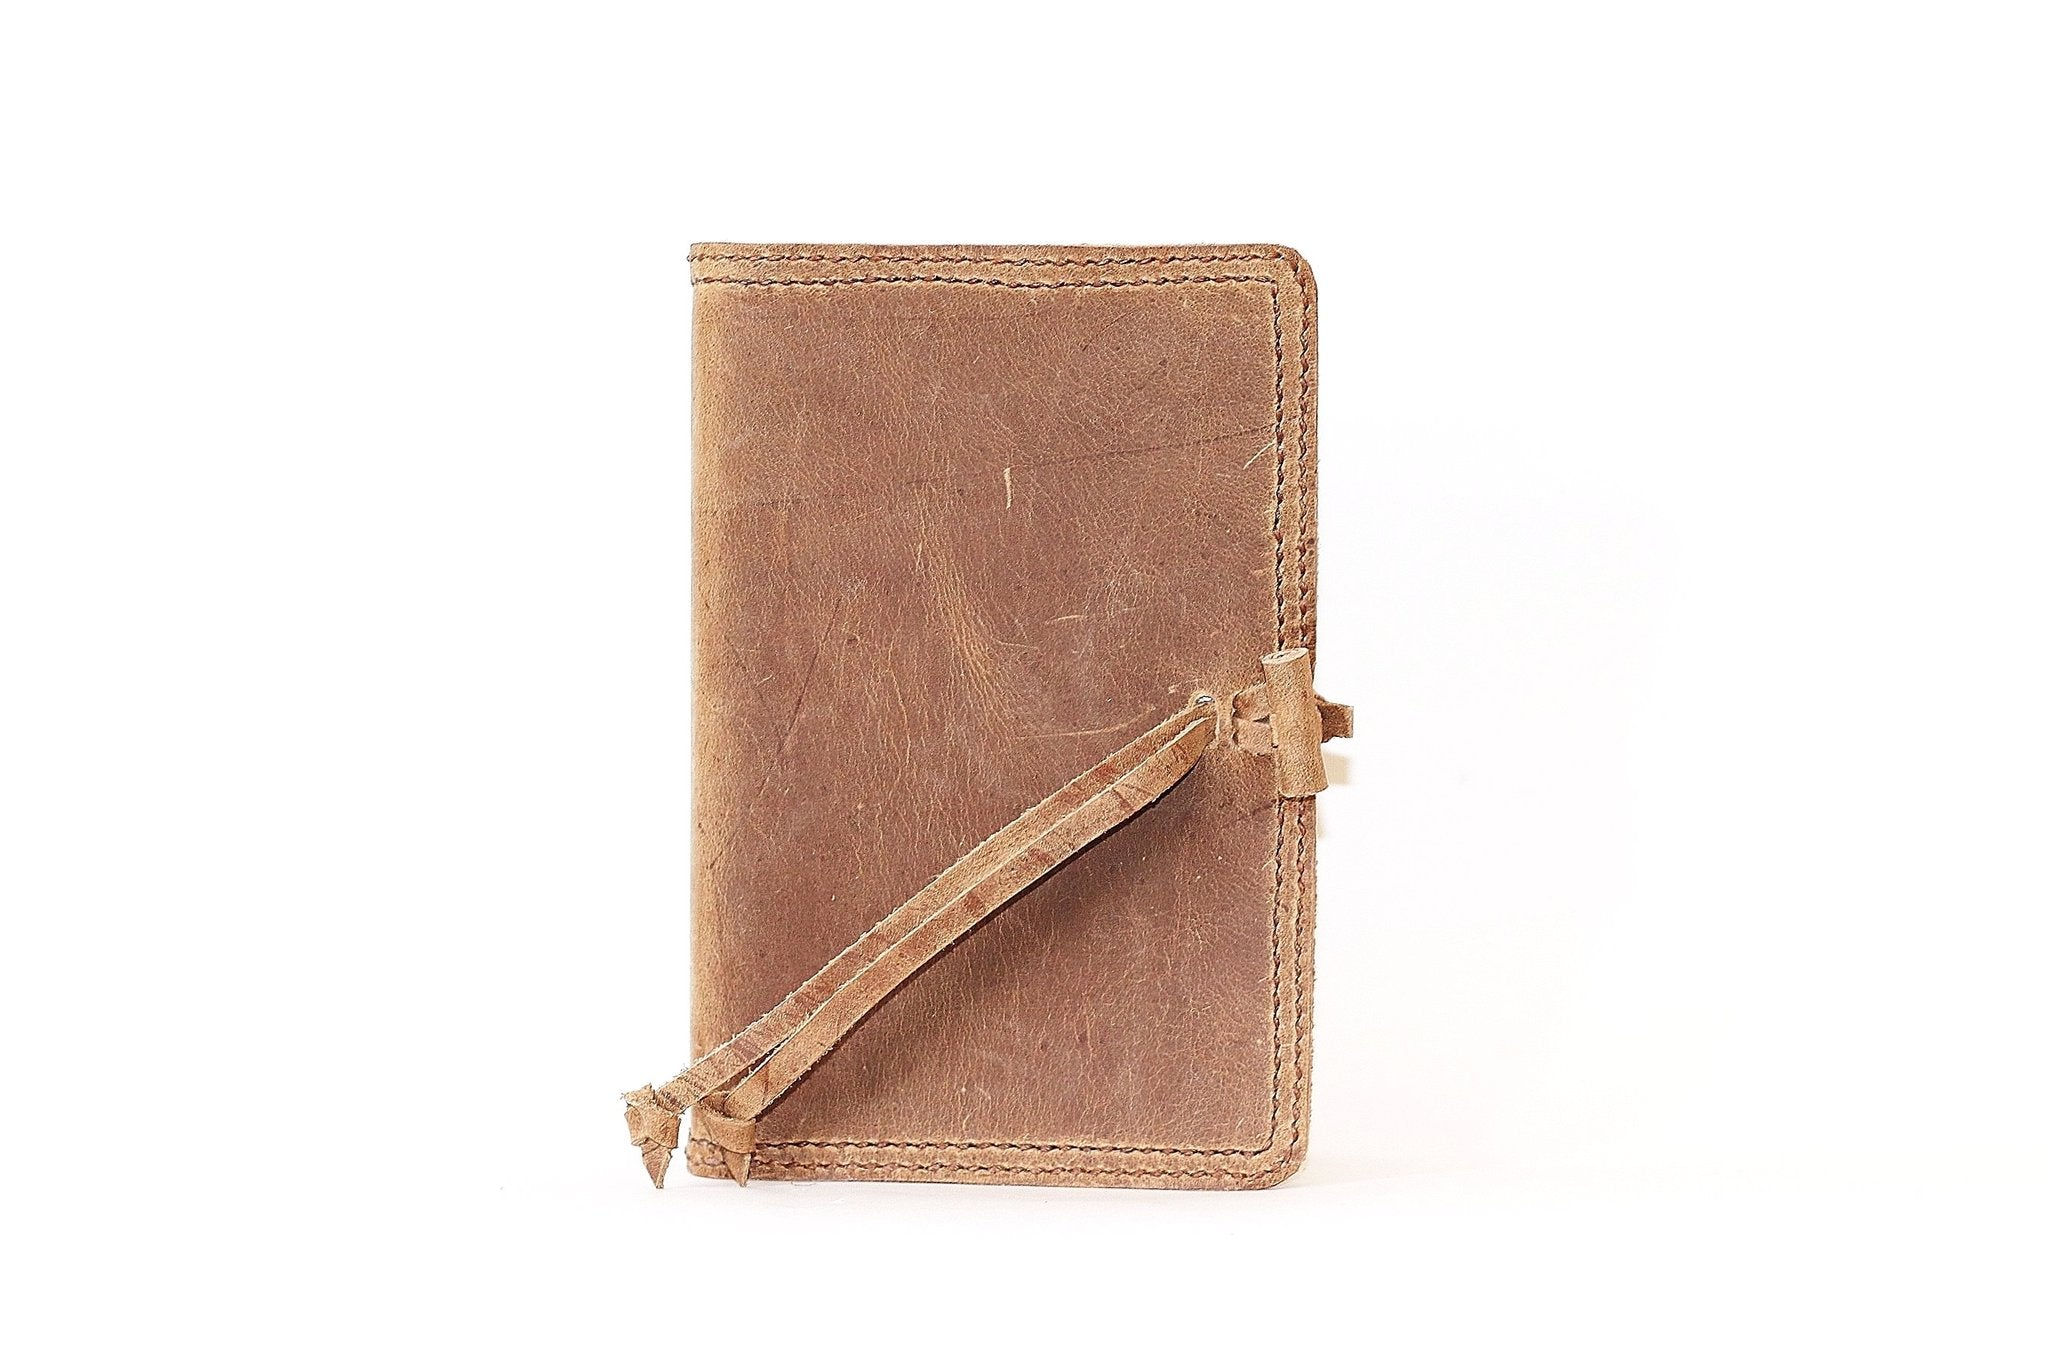 NIV Leather Bound Bible